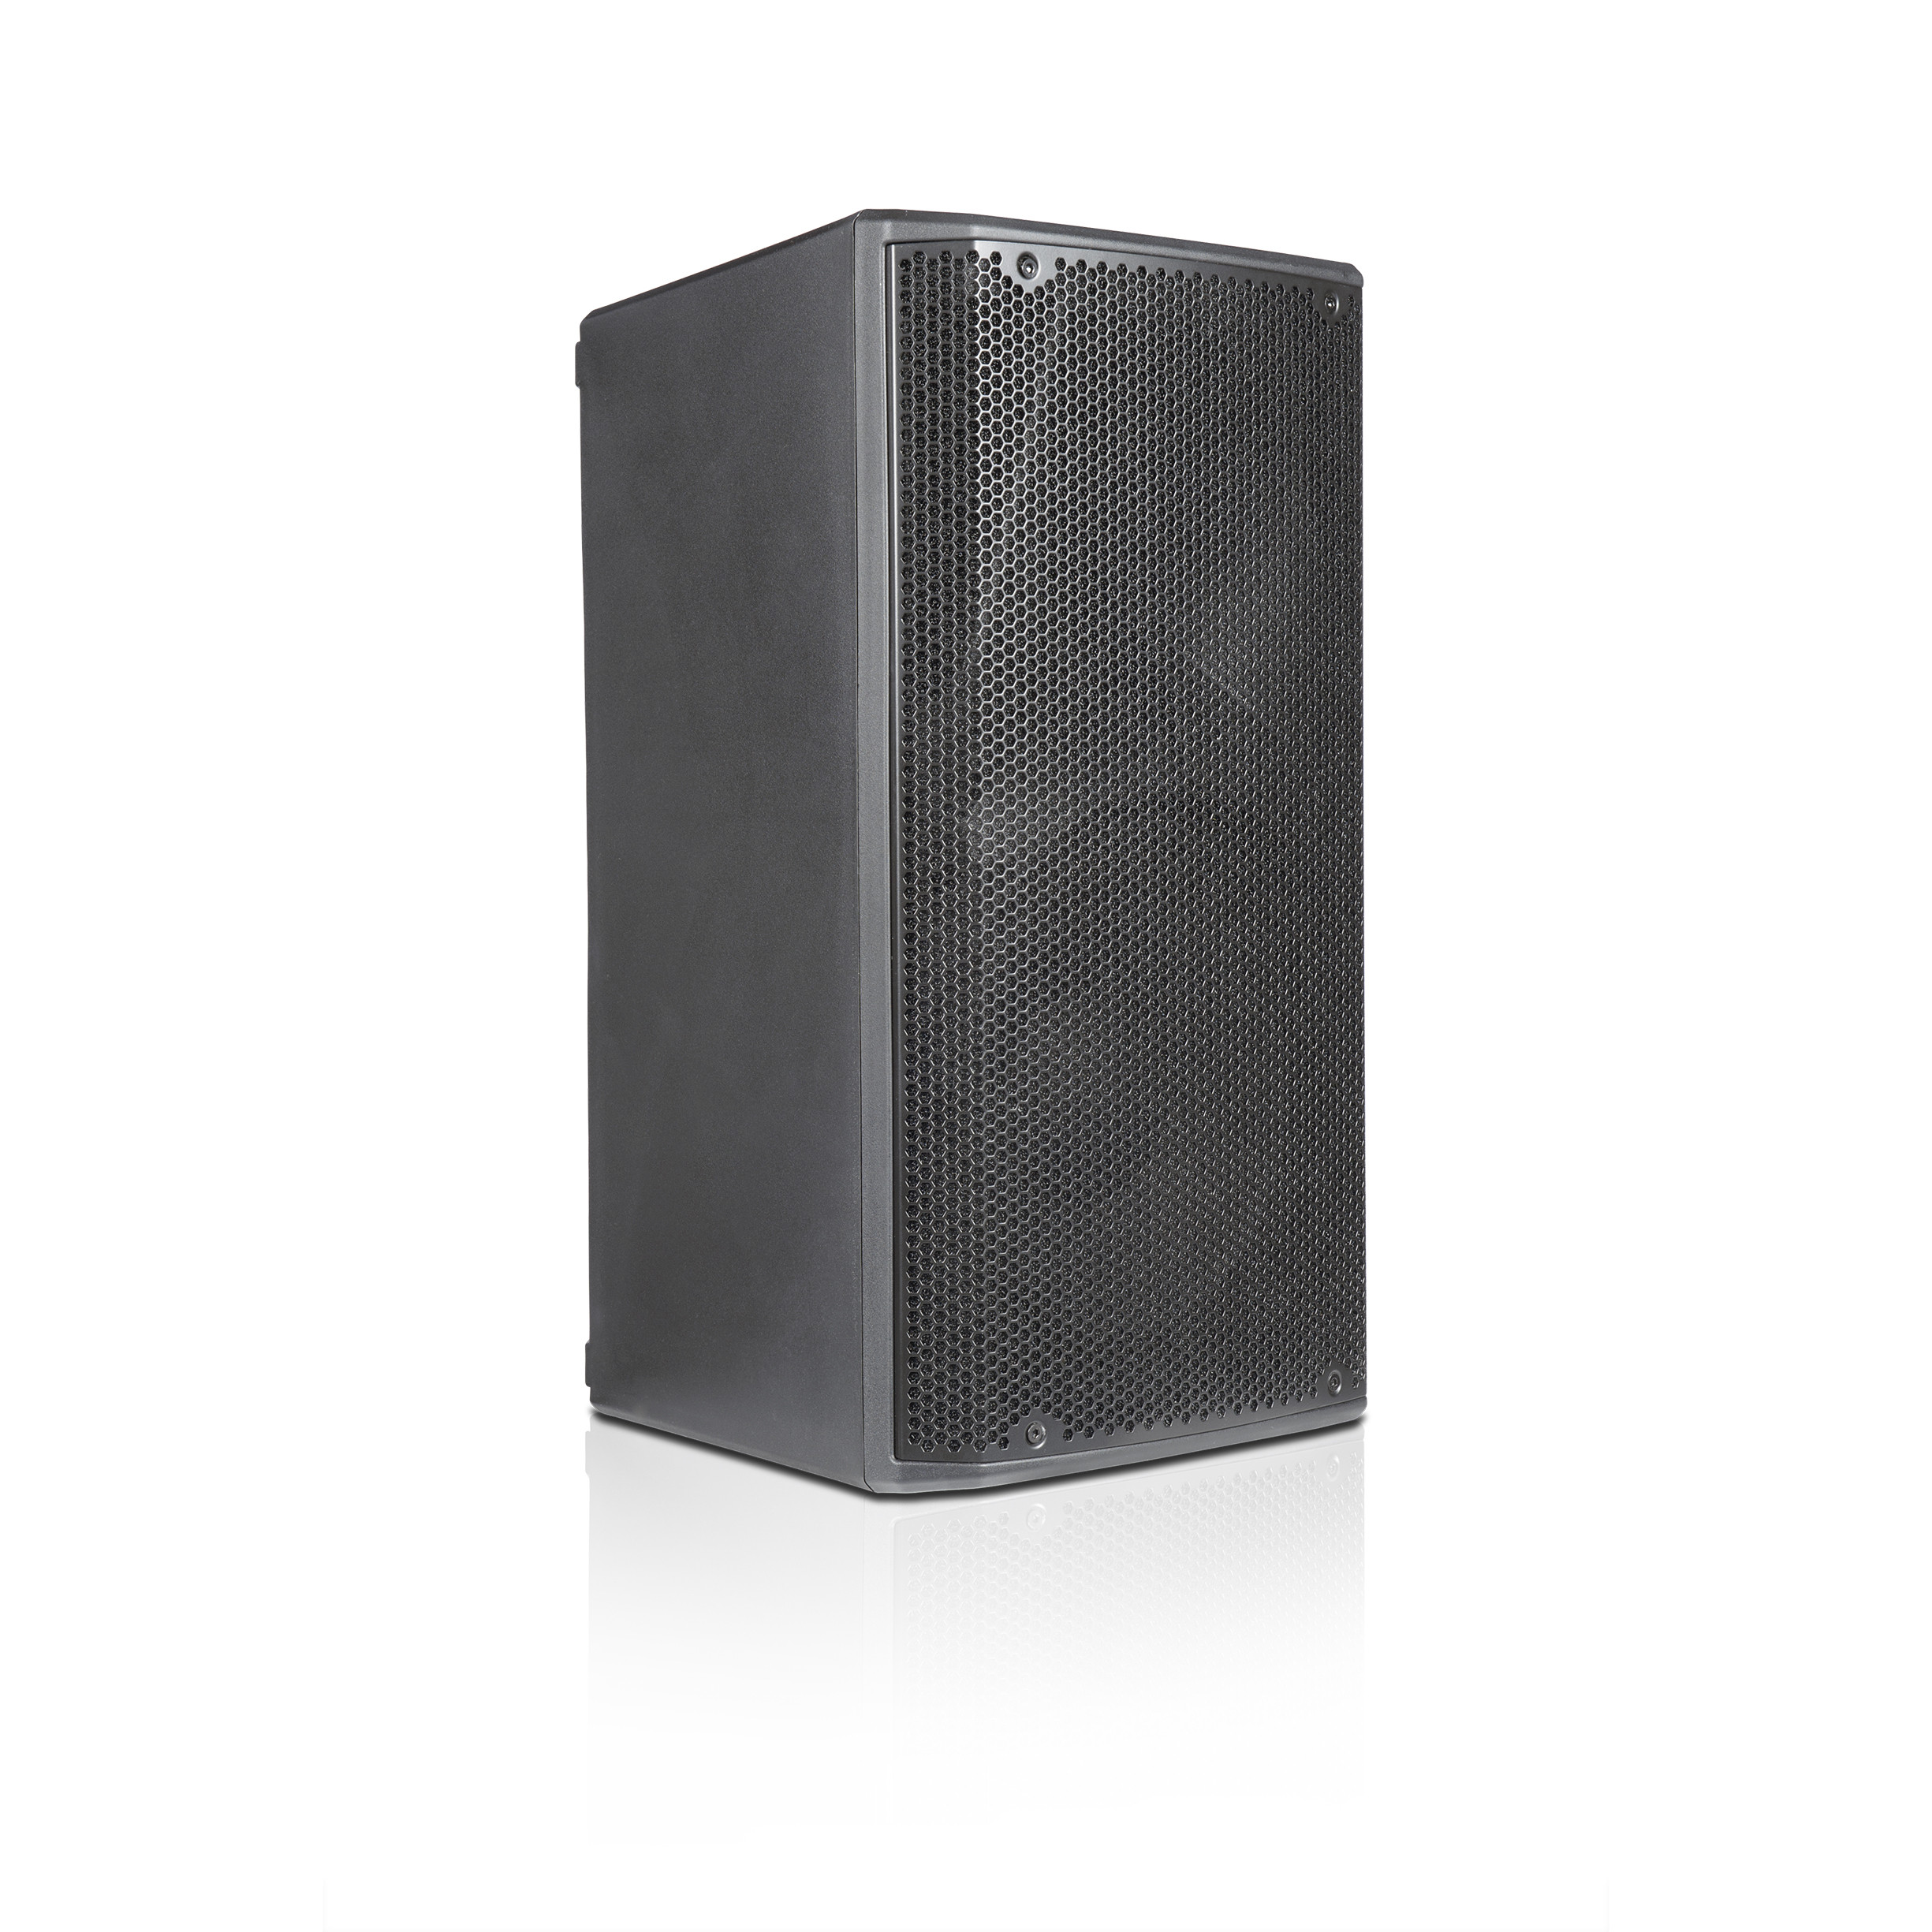 "DB TECHNOLOGIES OPERA 12 CASSA AMPLIFICATA ATTIVA DA LIVE 600 W SPEAKER DA 12"" 1200 WATT PEAK POWER"